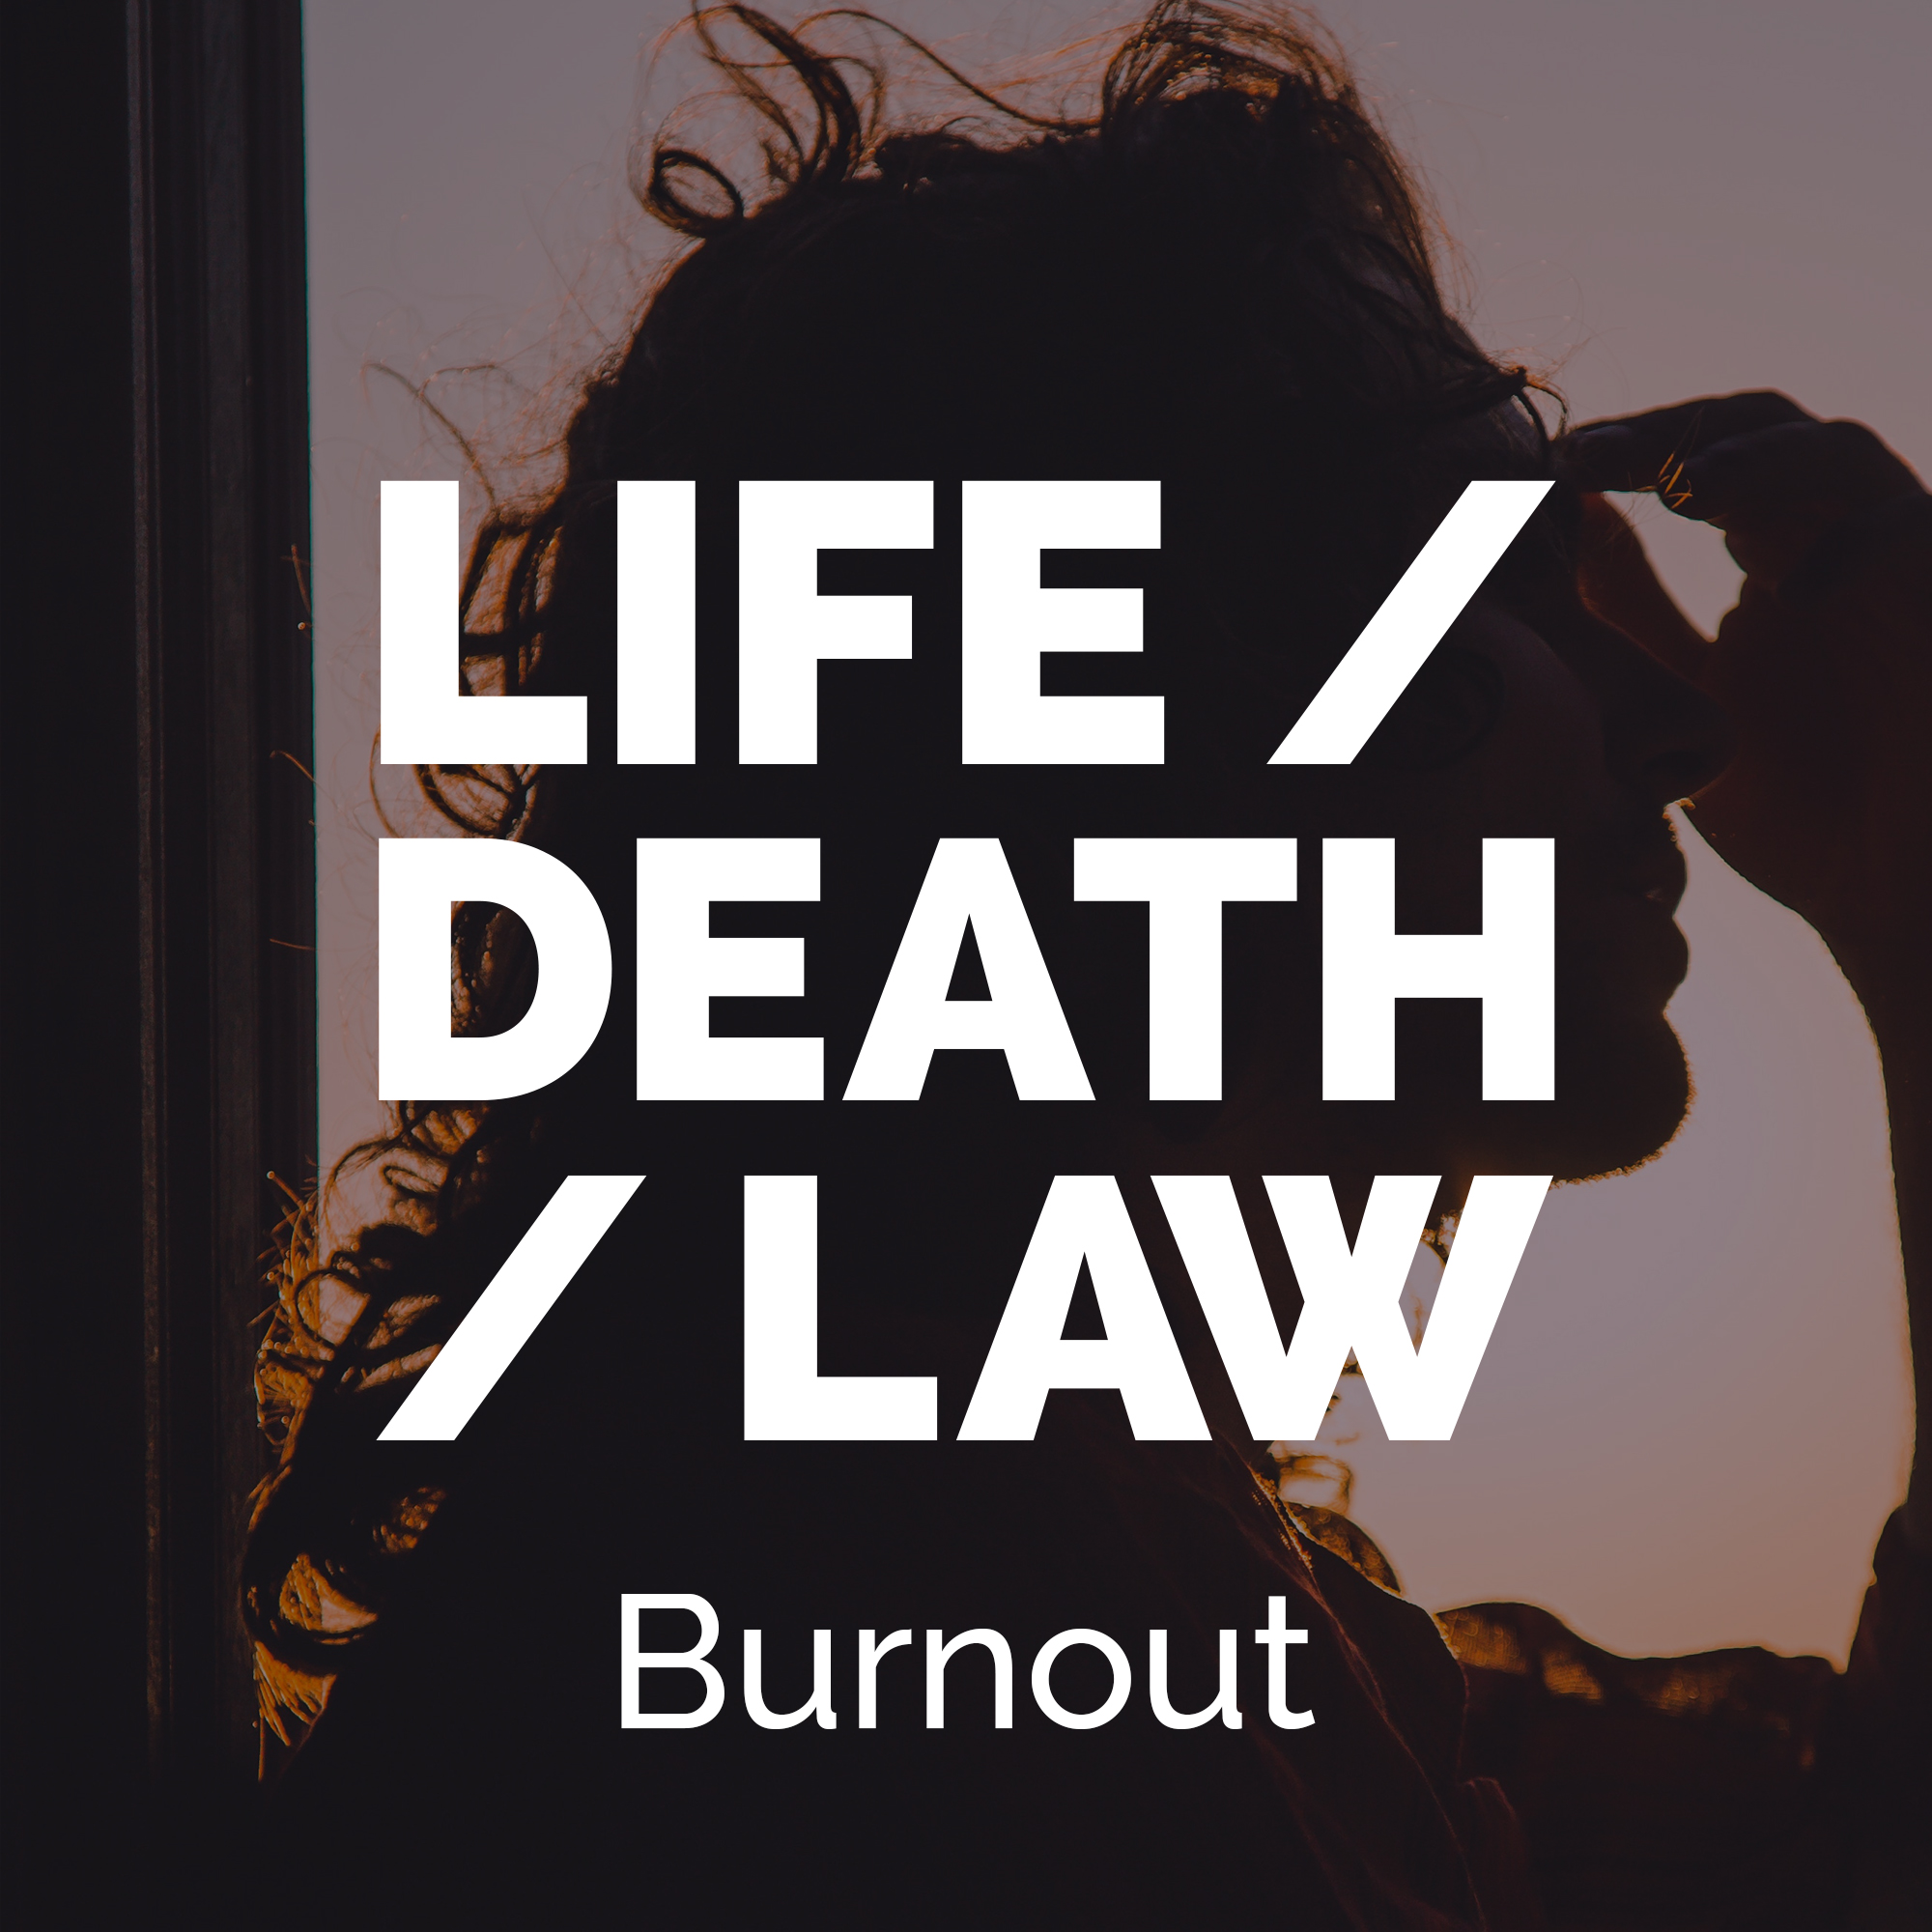 Burnout – Emily and Amelia Nagoski